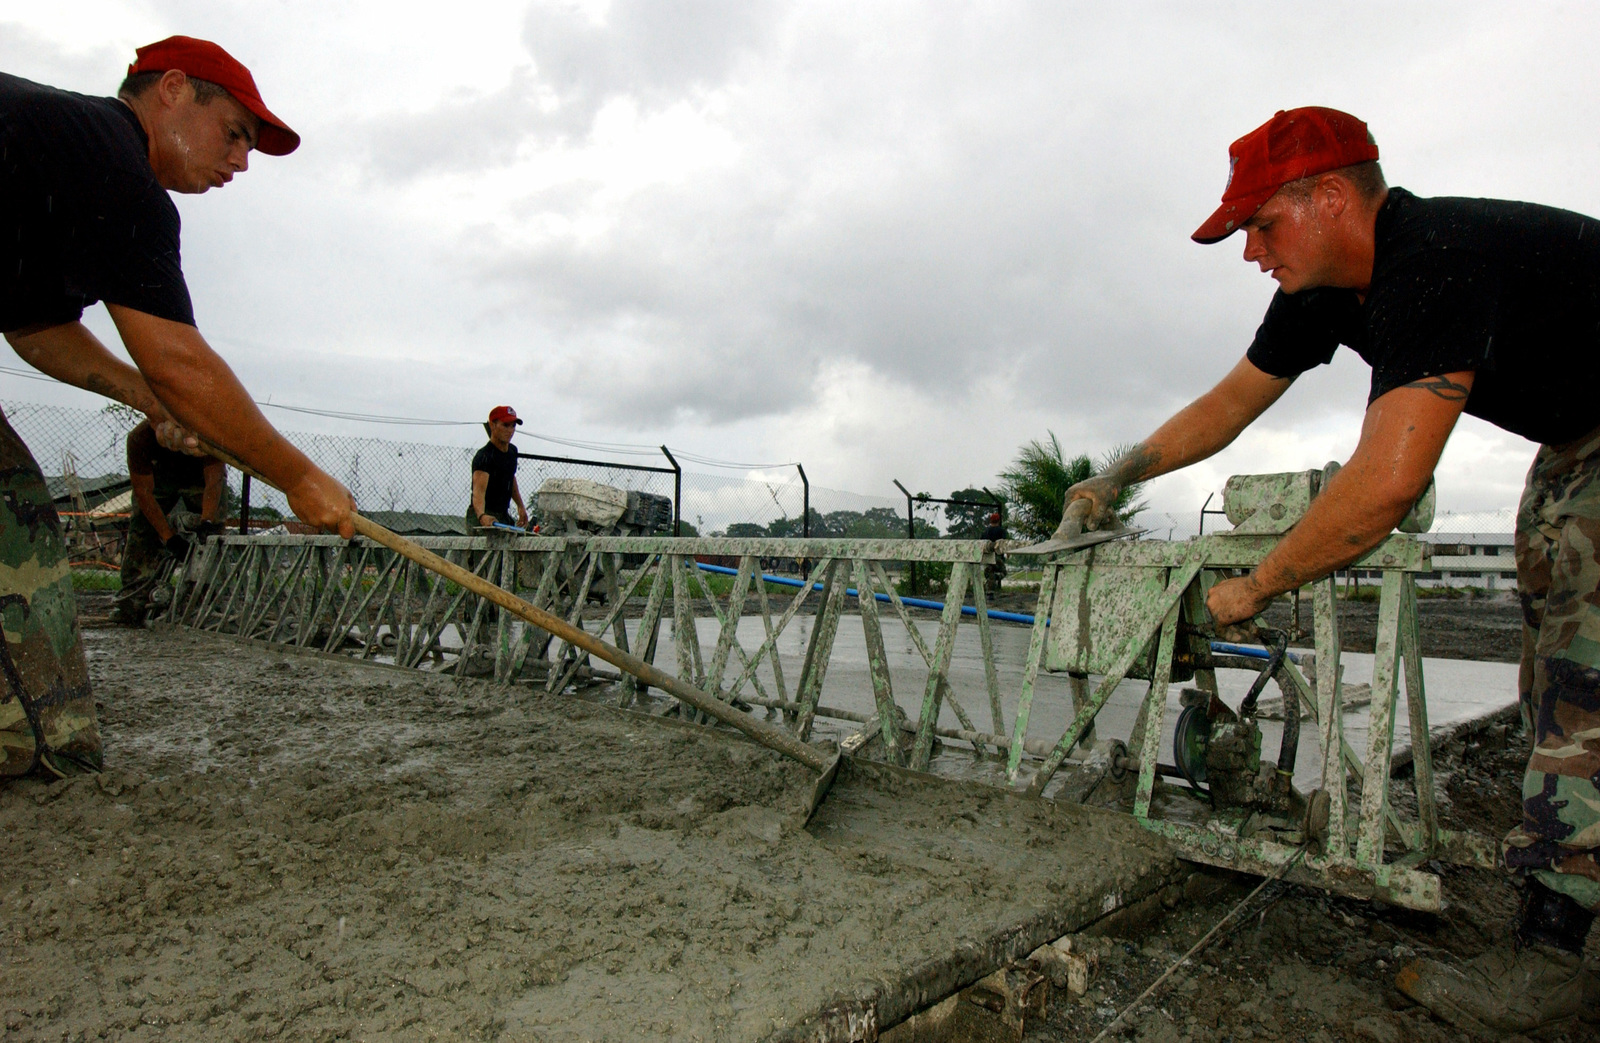 US Air Force (USAF) SENIOR AIRMAN (SRA) Miguel Gastelum from the 820th Red Horse Squadron (RHS), spreads concrete as AIRMAN 1ST Class (A1C) Garett Jentry releases the tension on a skew as it passes over the frame in support of Exercise New Horizons 2004-Guyana (GUY). The New Horizons 2004 Guyana mission is a joint service training exercise held in Guyana, South America and co-sponsored by both the US Southern Command (SOUTHCOM) and the Guyana (GUY) Defense Force (GDF)